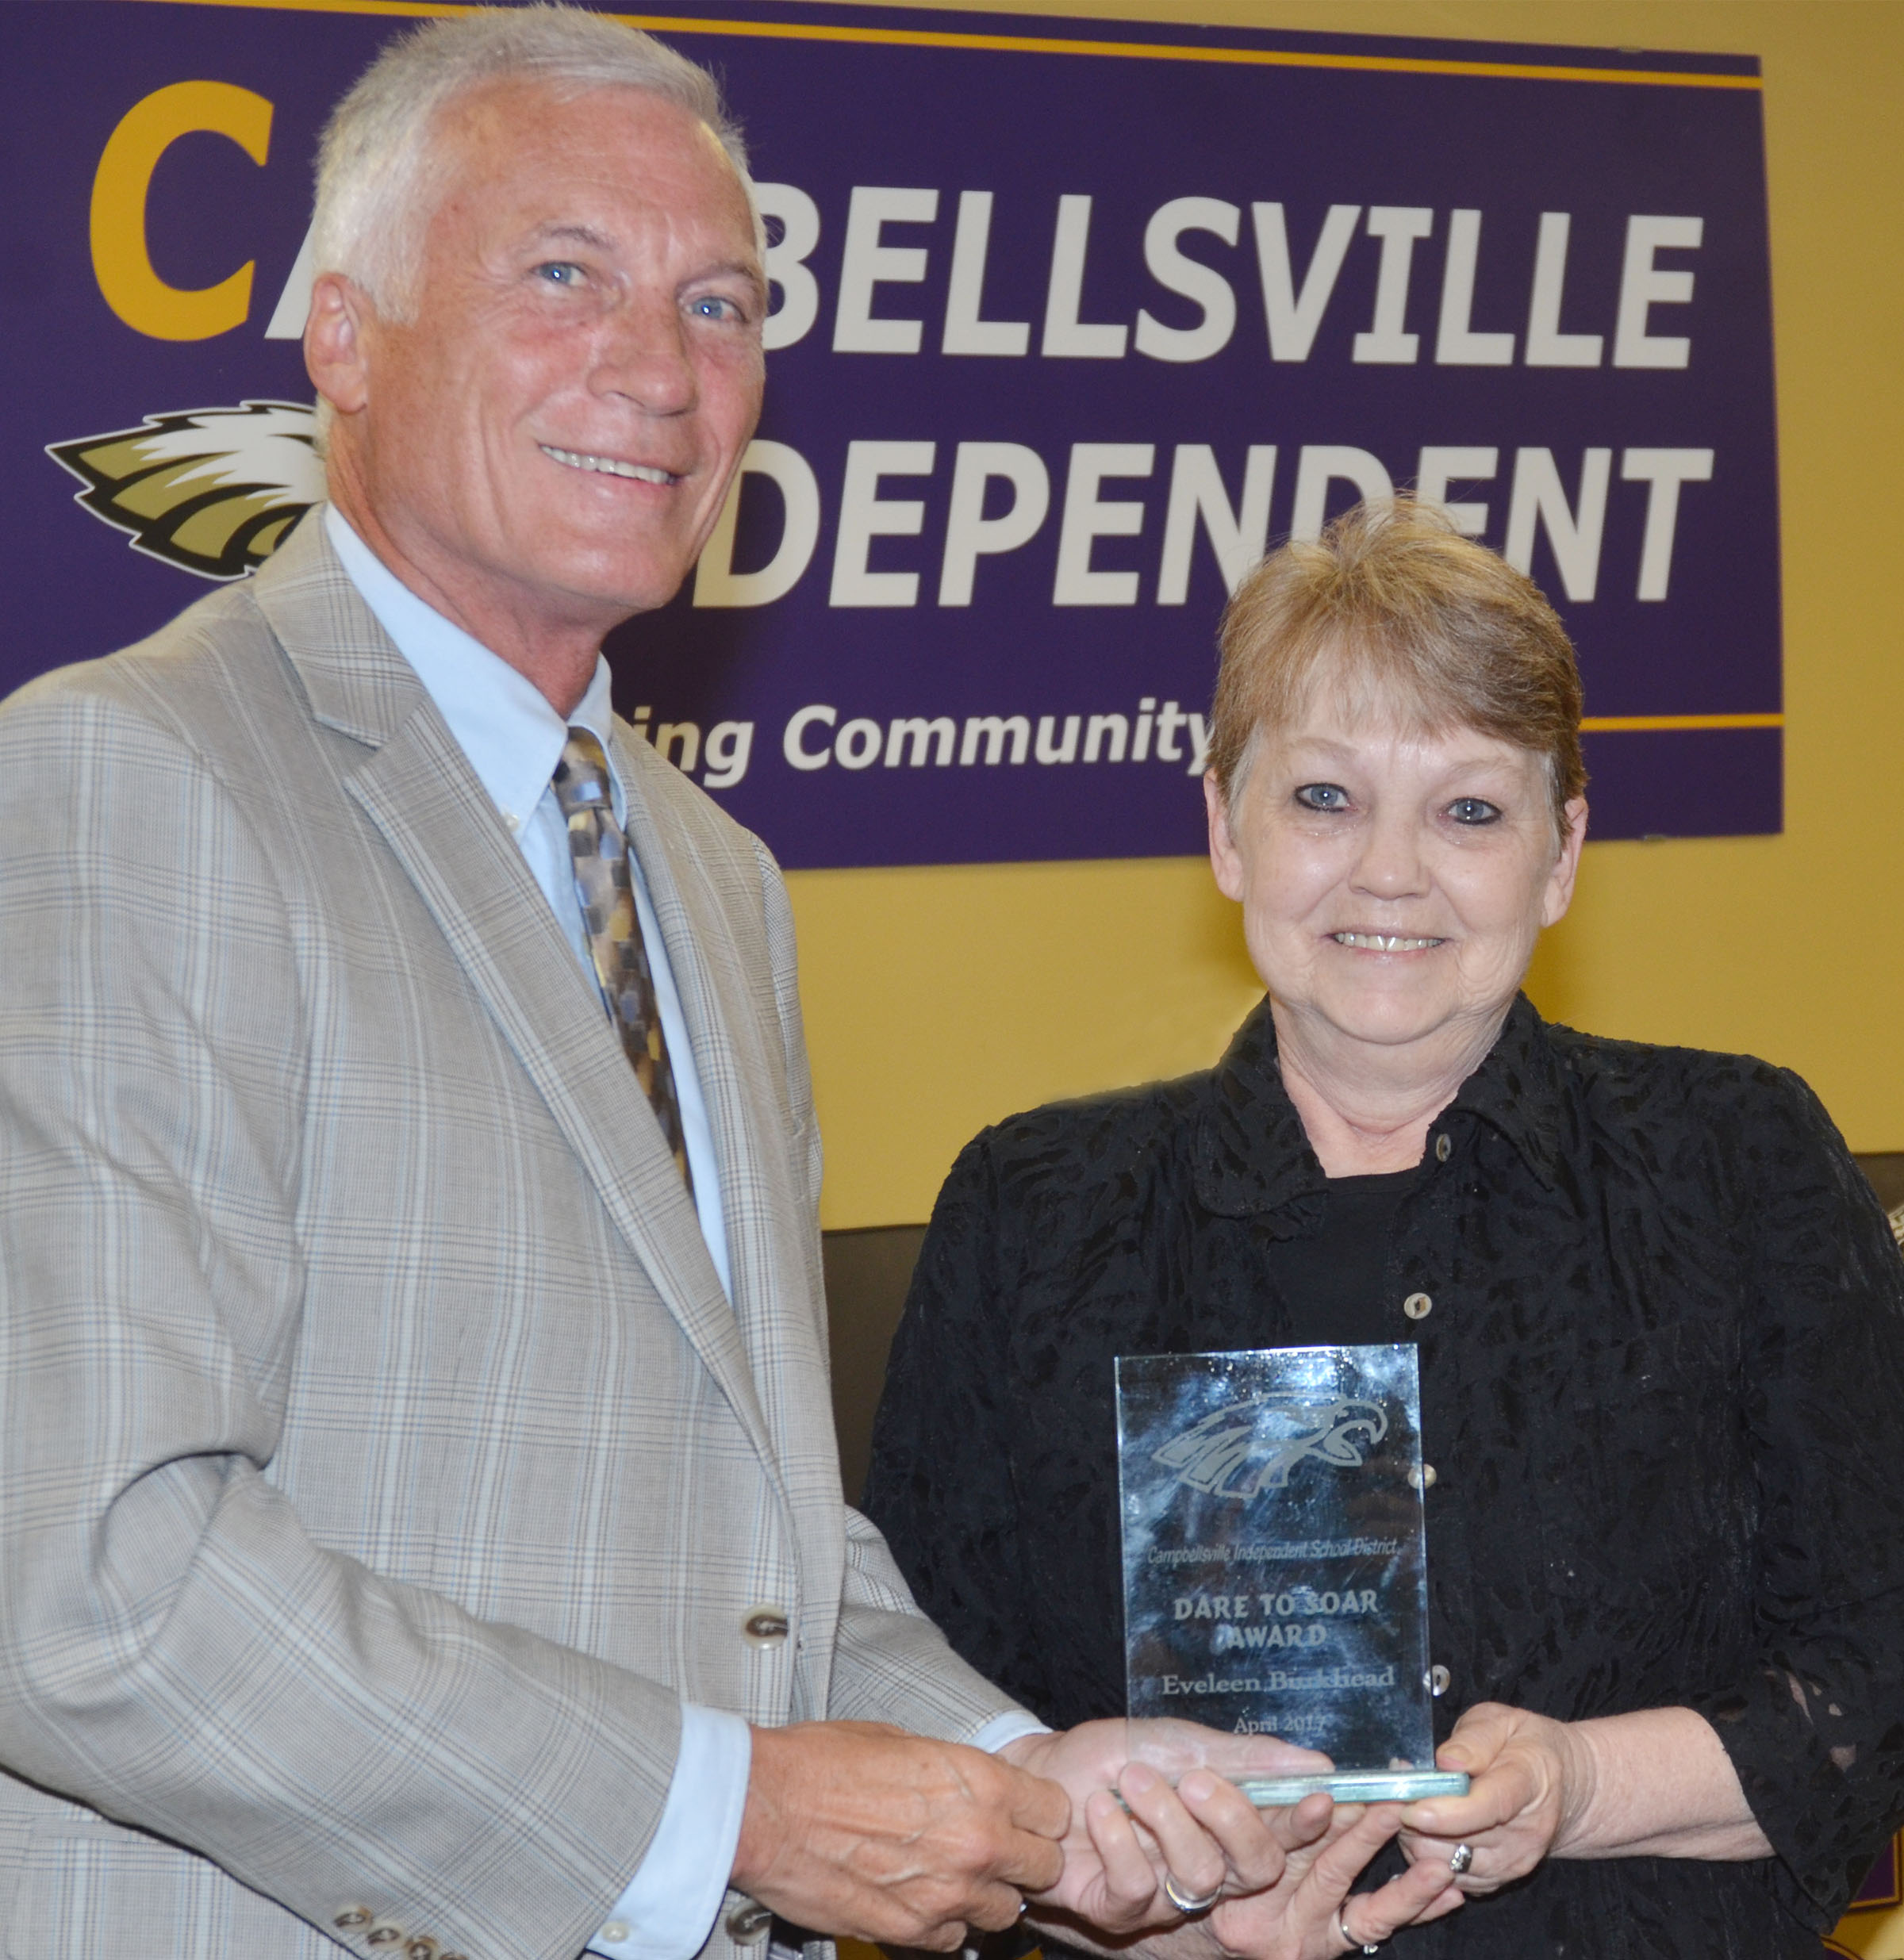 Campbellsville Elementary School cafeteria worker Eveleen Burkhead received this month's Dare to Soar award from Campbellsville Independent Schools Superintendent Mike Deaton.